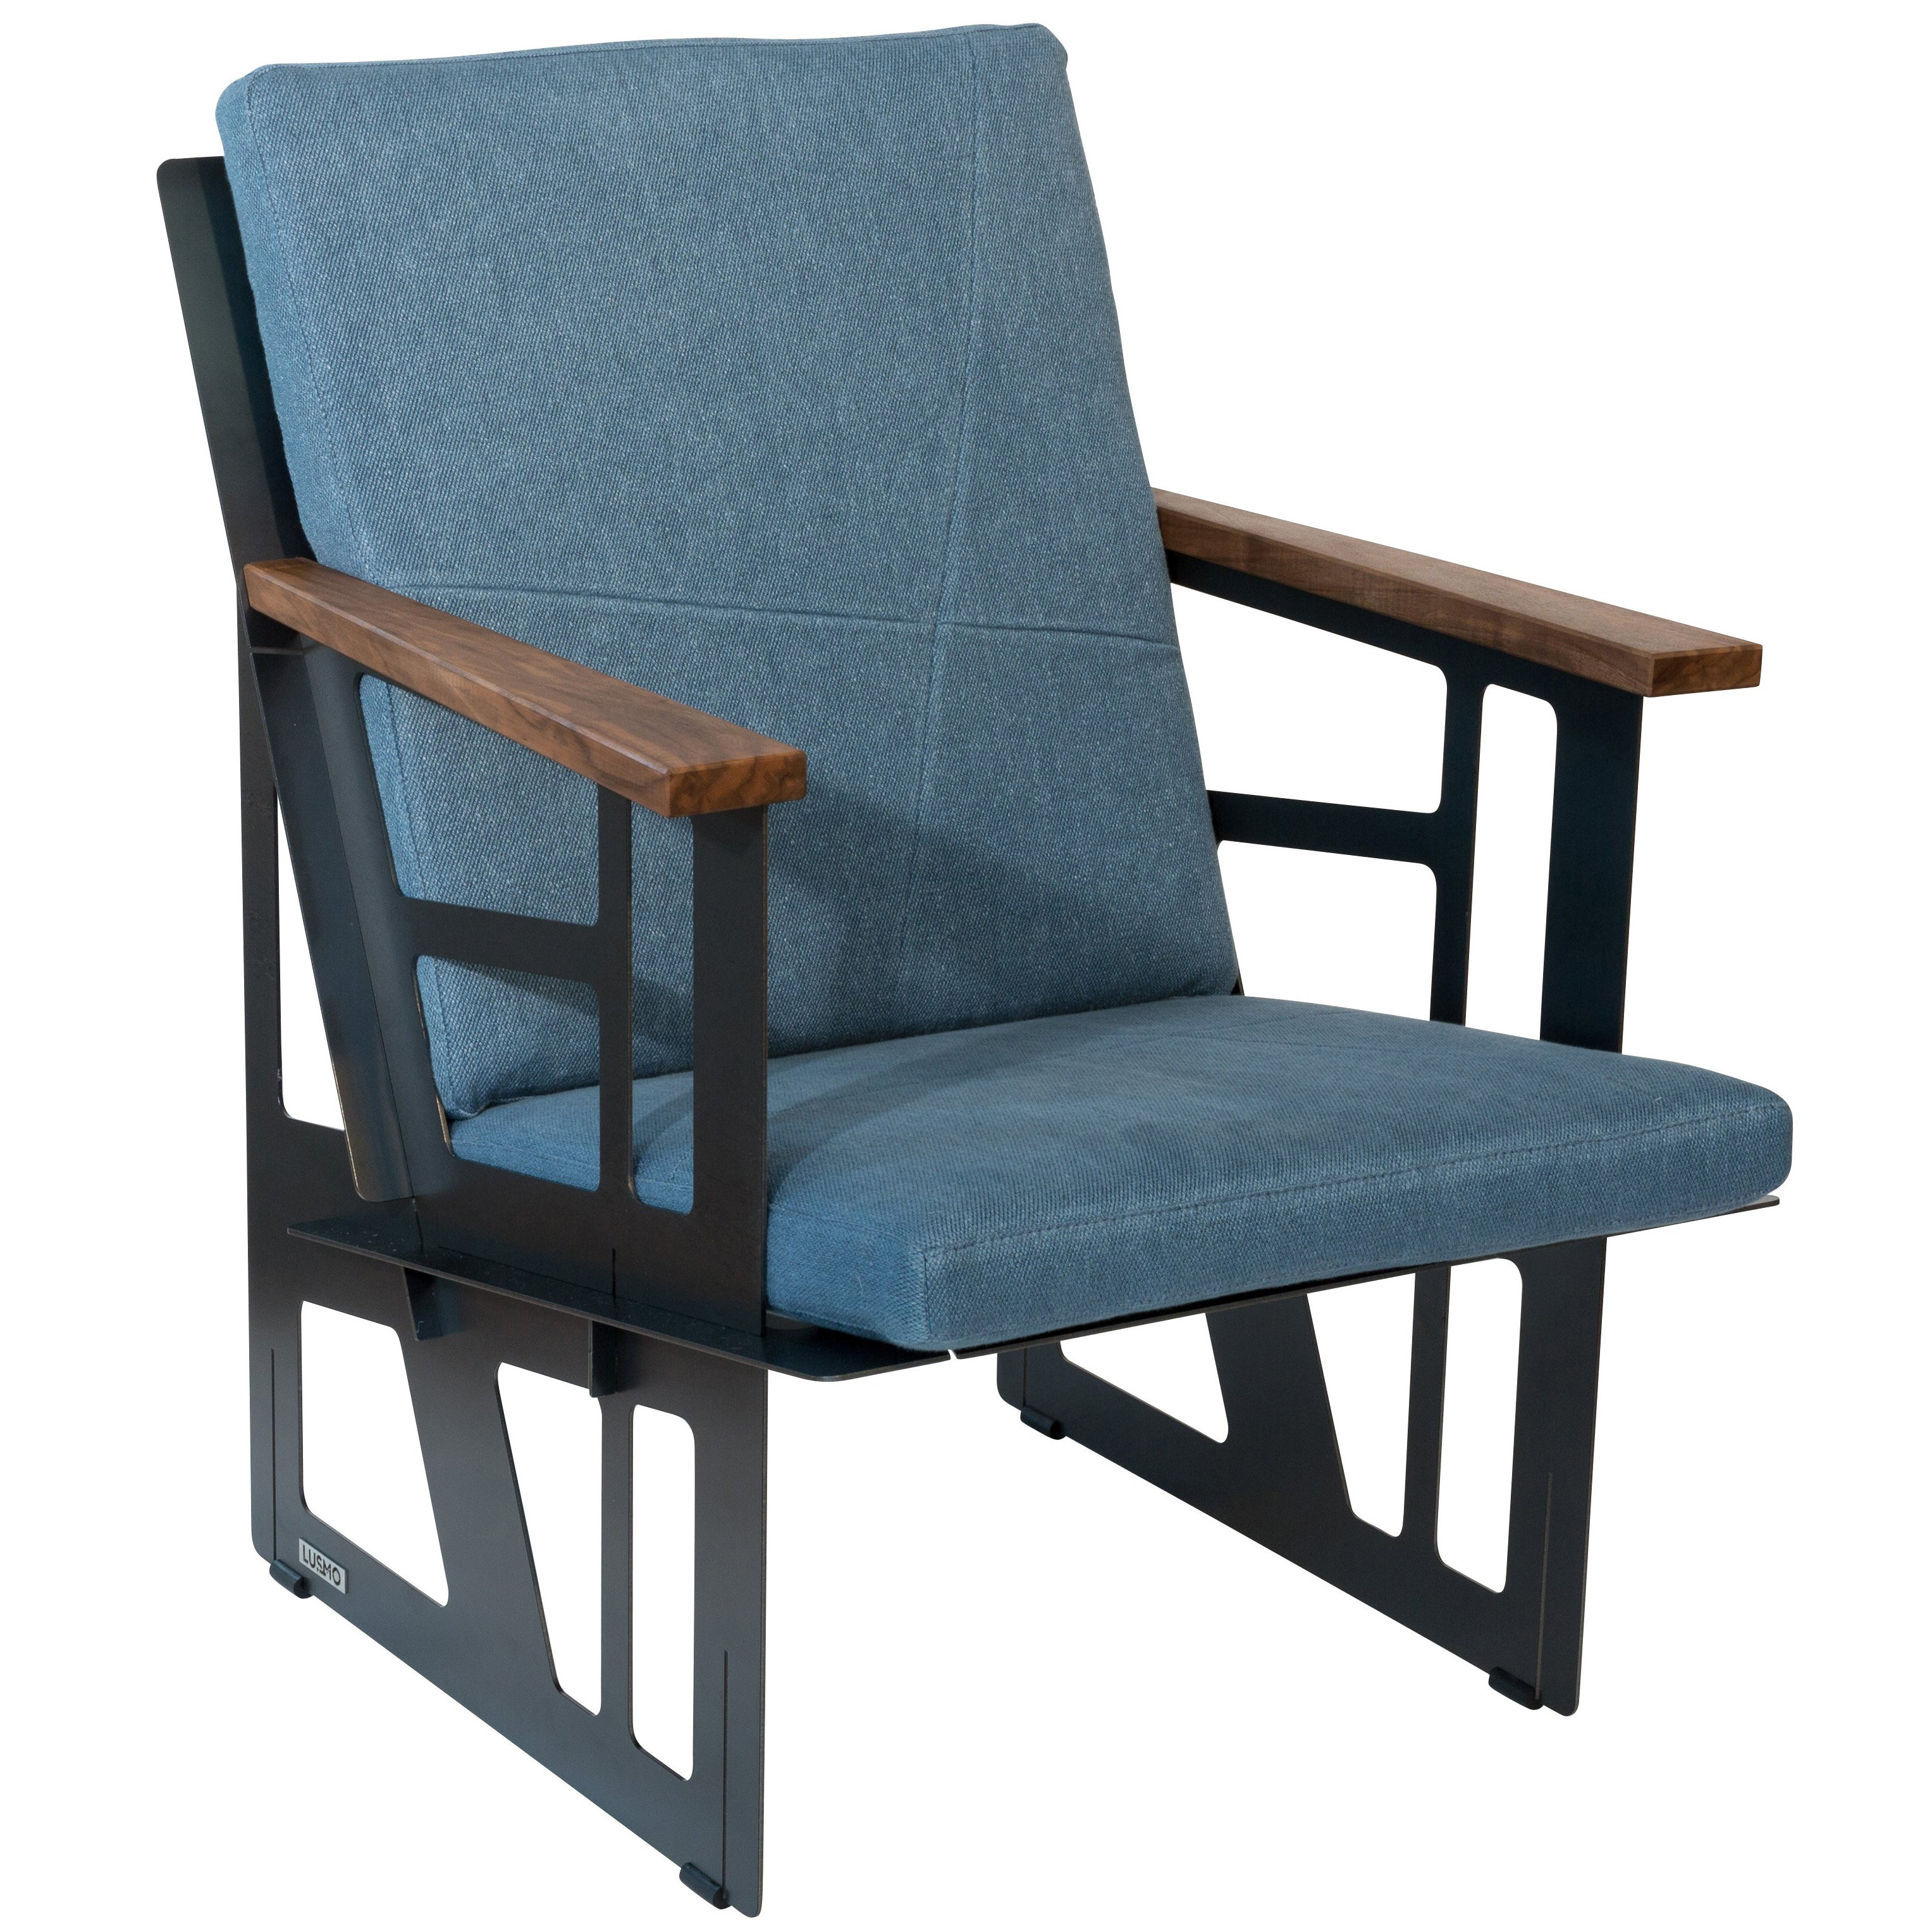 North Camp Stuhl Foldable Industrial Lounge Chair In Steel And Blue Cushion